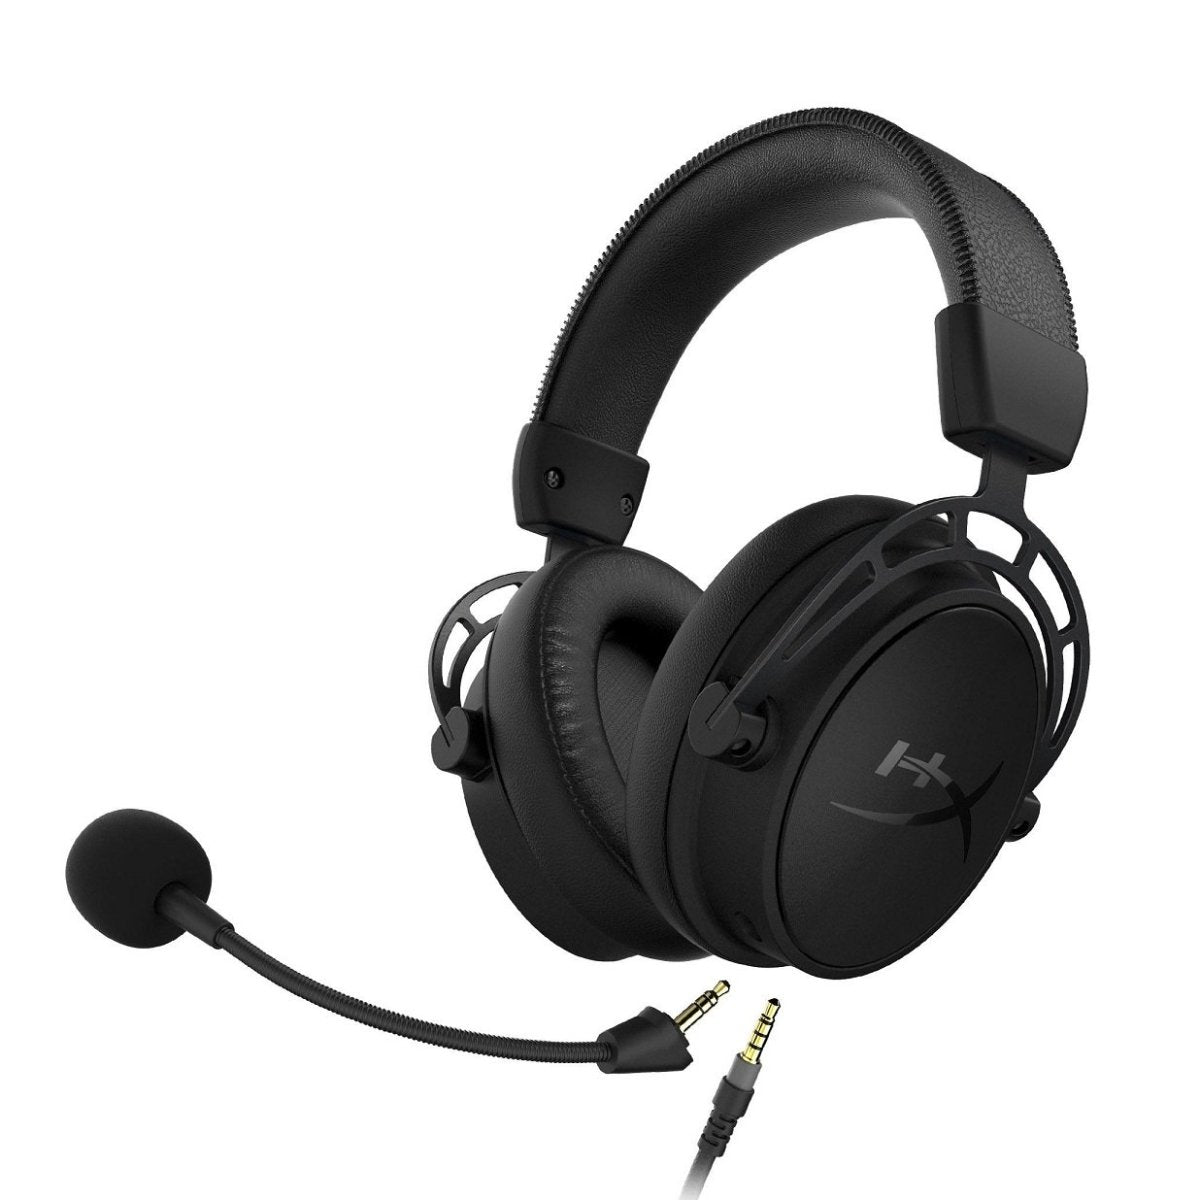 Audífonos Gamer HyperX Cloud Alpha S 7.1 Surround